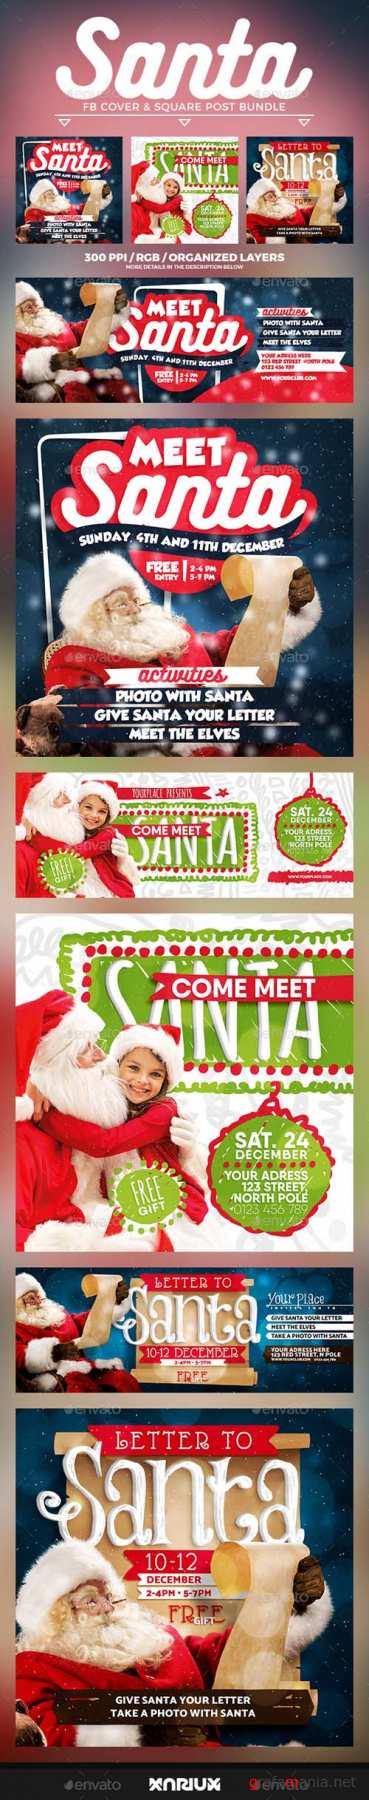 Meet Santa Facebook Cover Bundle 20954391